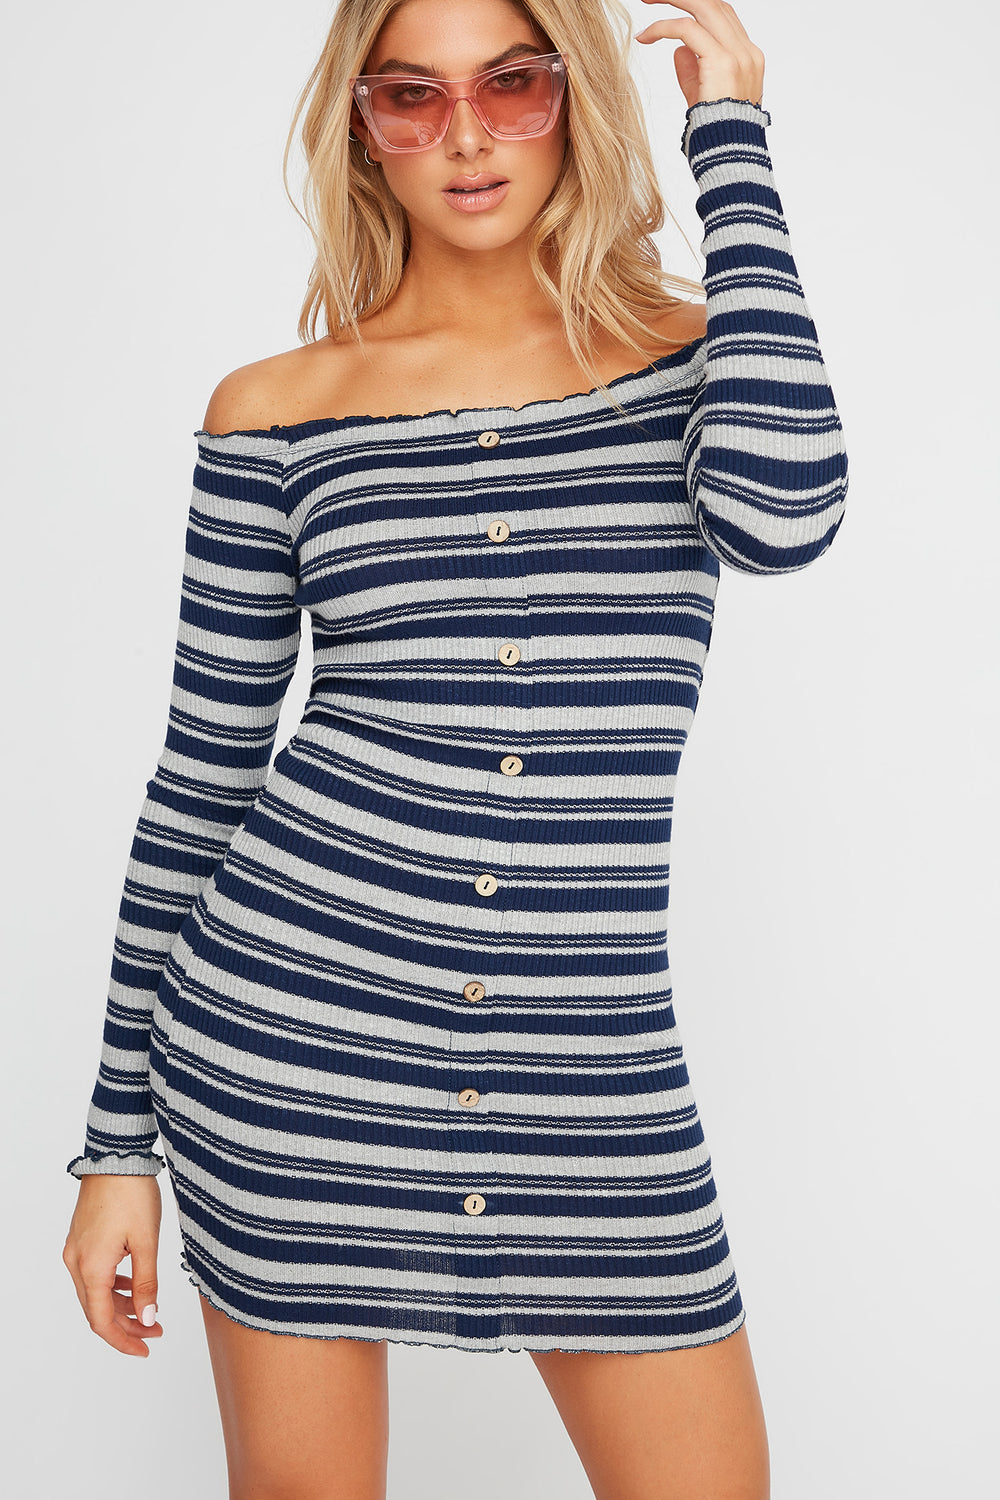 Striped Off The Shoulder Button Long Sleeve Ribbed Dress Deep Blue